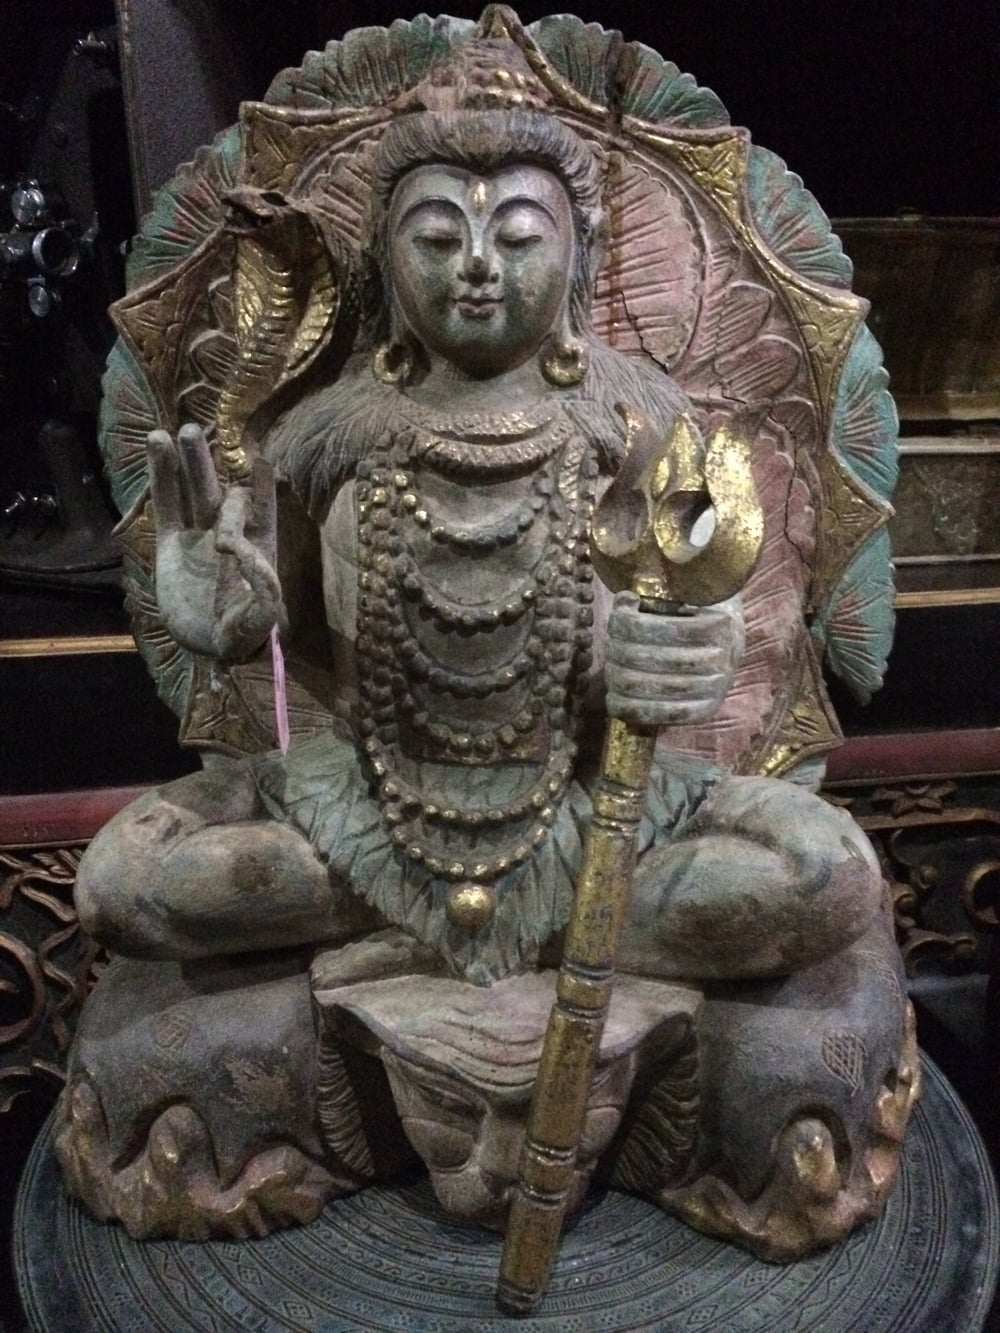 There are such cool statues and masks everywhere. This is Shiva from Yogyakarta